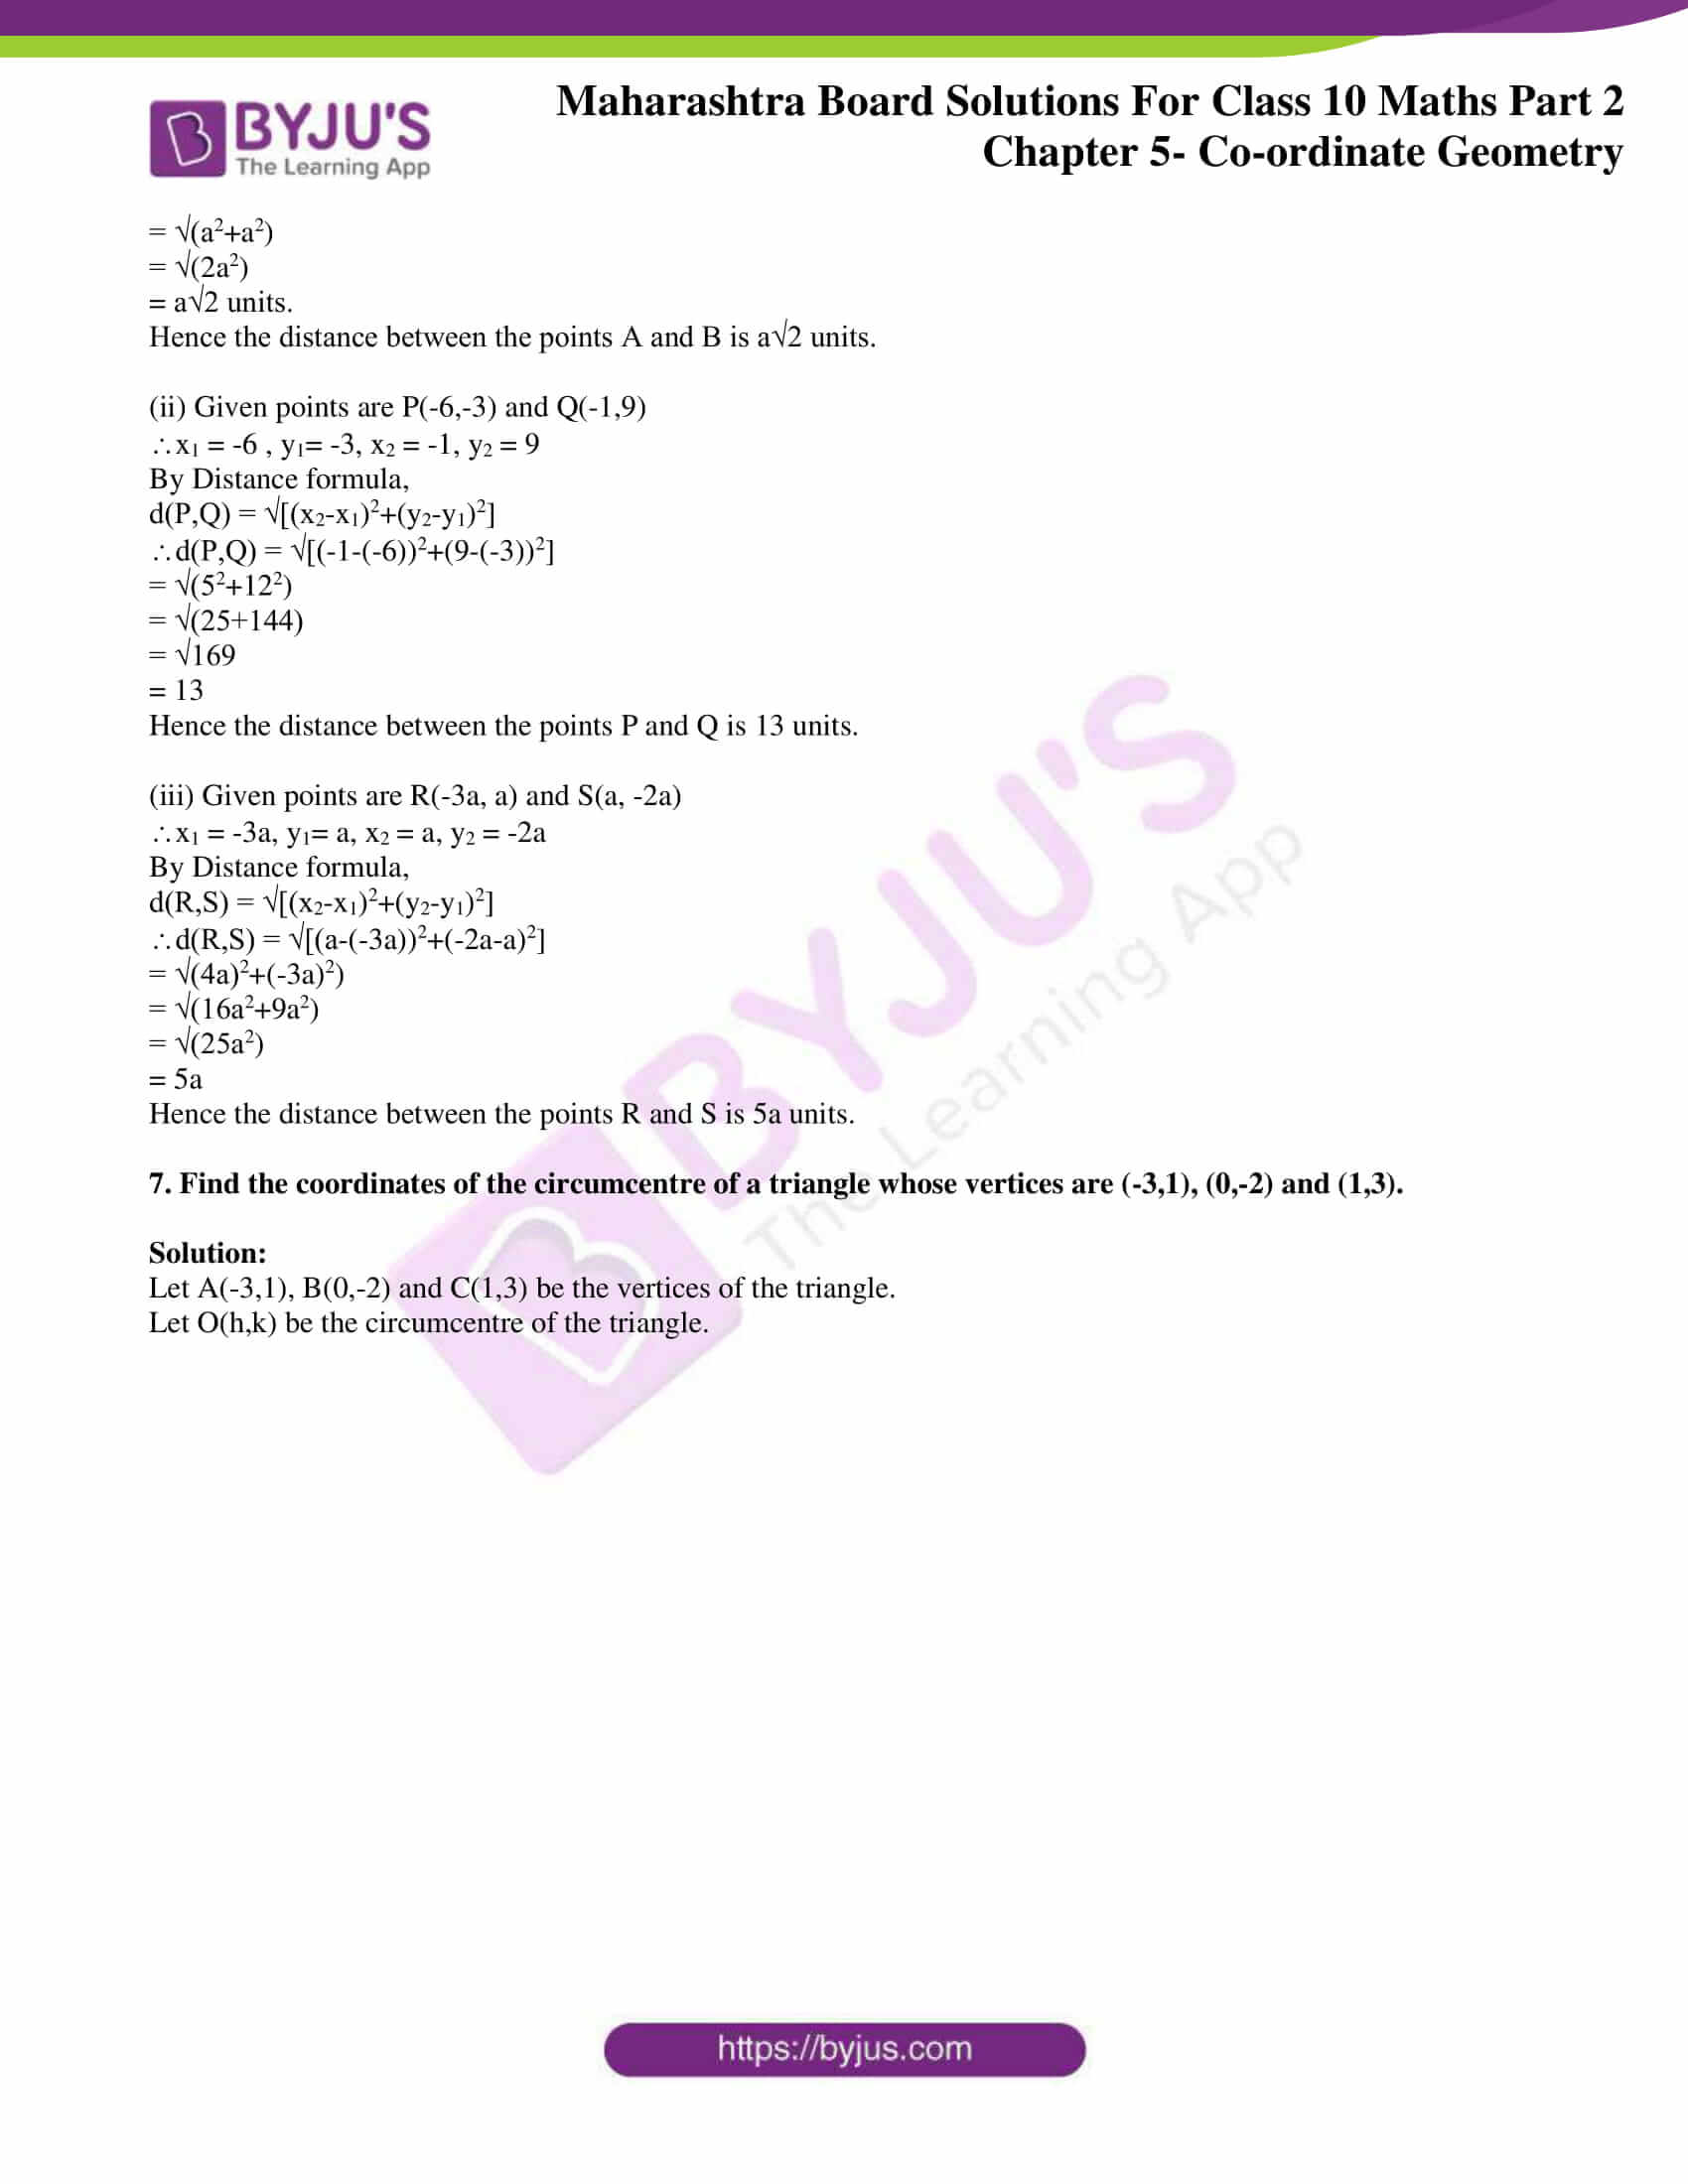 msbshse sol class 10 maths part 2 chapter 5 15